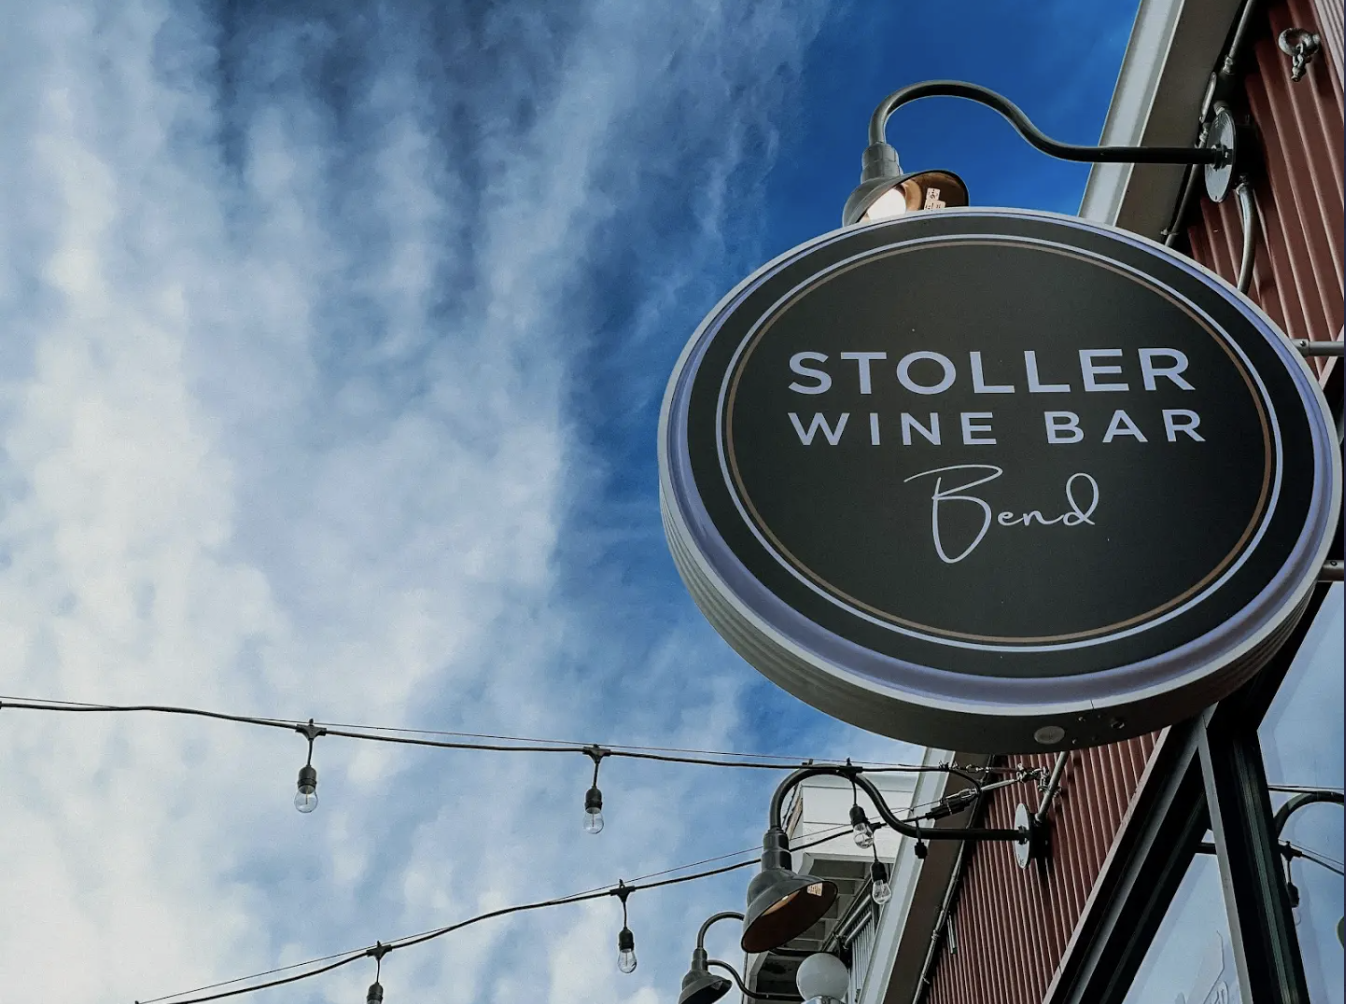 Stoller Wine Bar signage outside new location at Box Factory in Bend